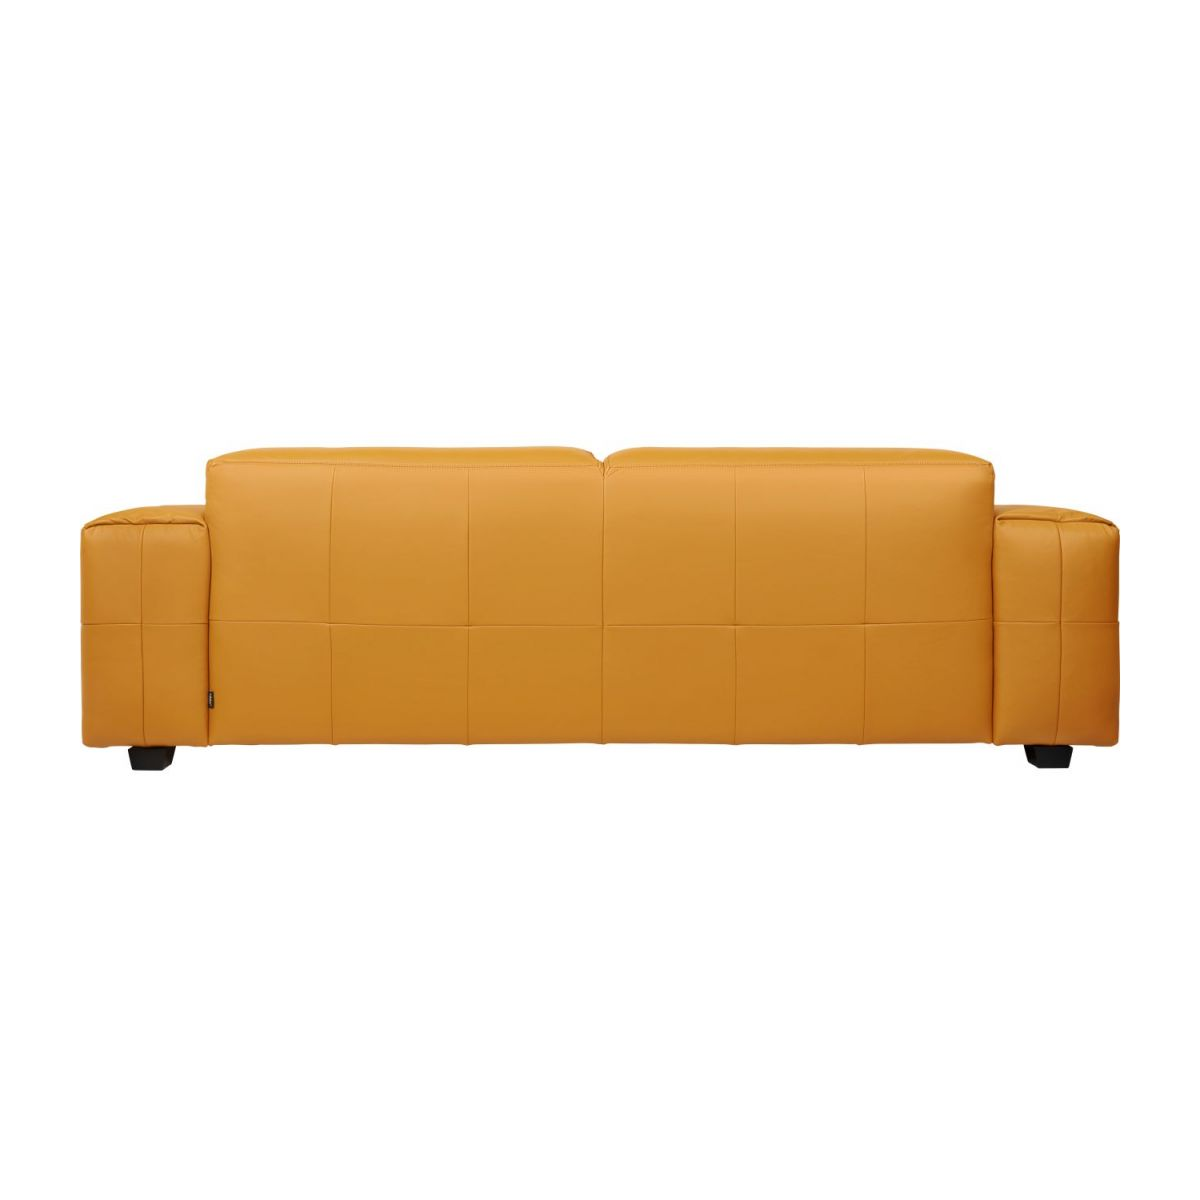 2 seater sofa in Savoy semi-aniline leather, cognac n°5